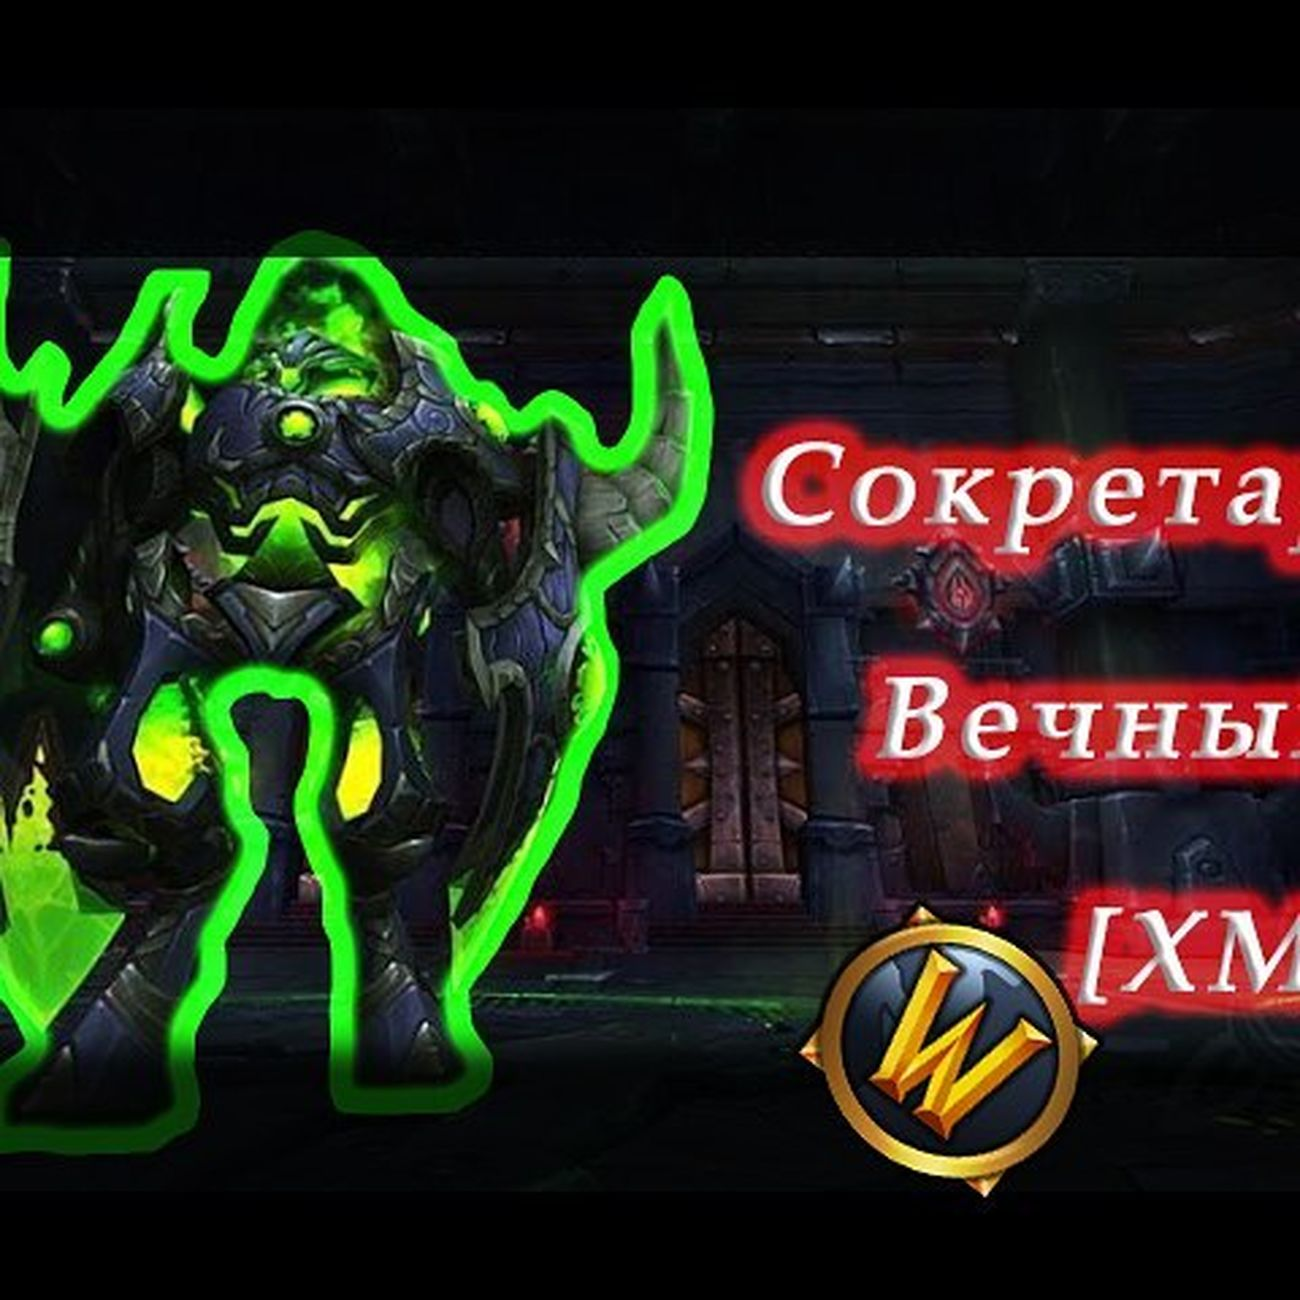 WOW Shaman Health Socrethar Eternal Tactics Guide эстэтика Fast сокретар Hm ХМ